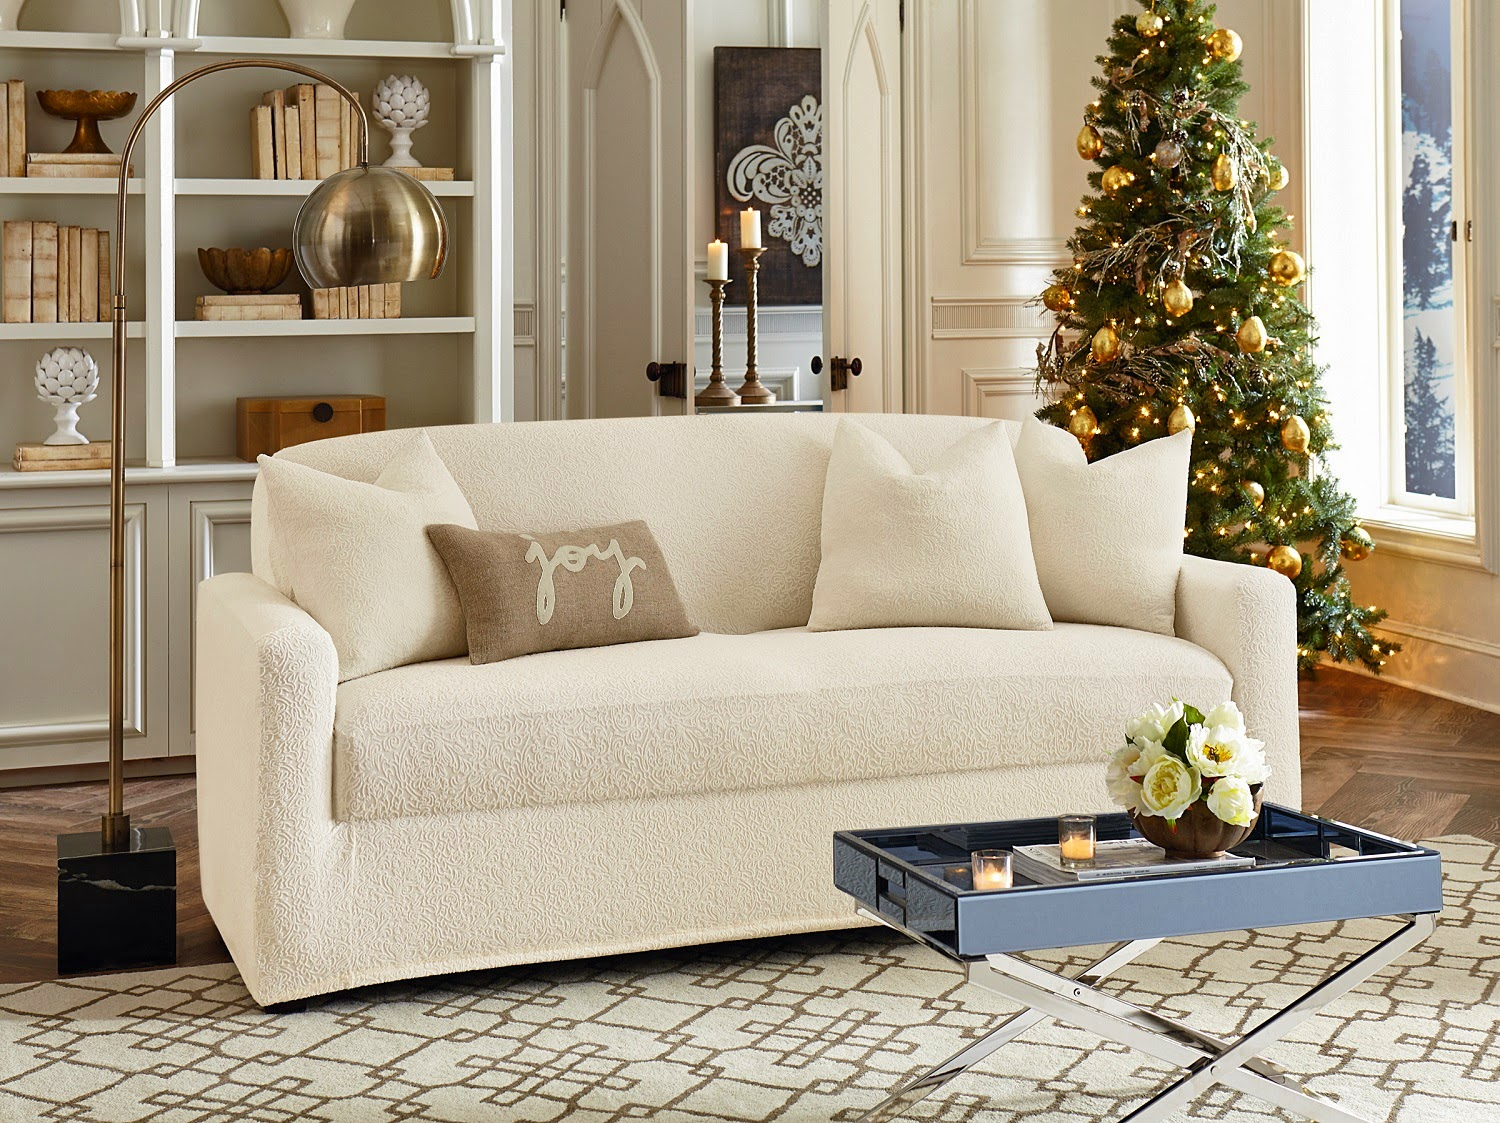 Furniture & Rug: Slipcovers For Sofas With Cushions Separate | Camo ...